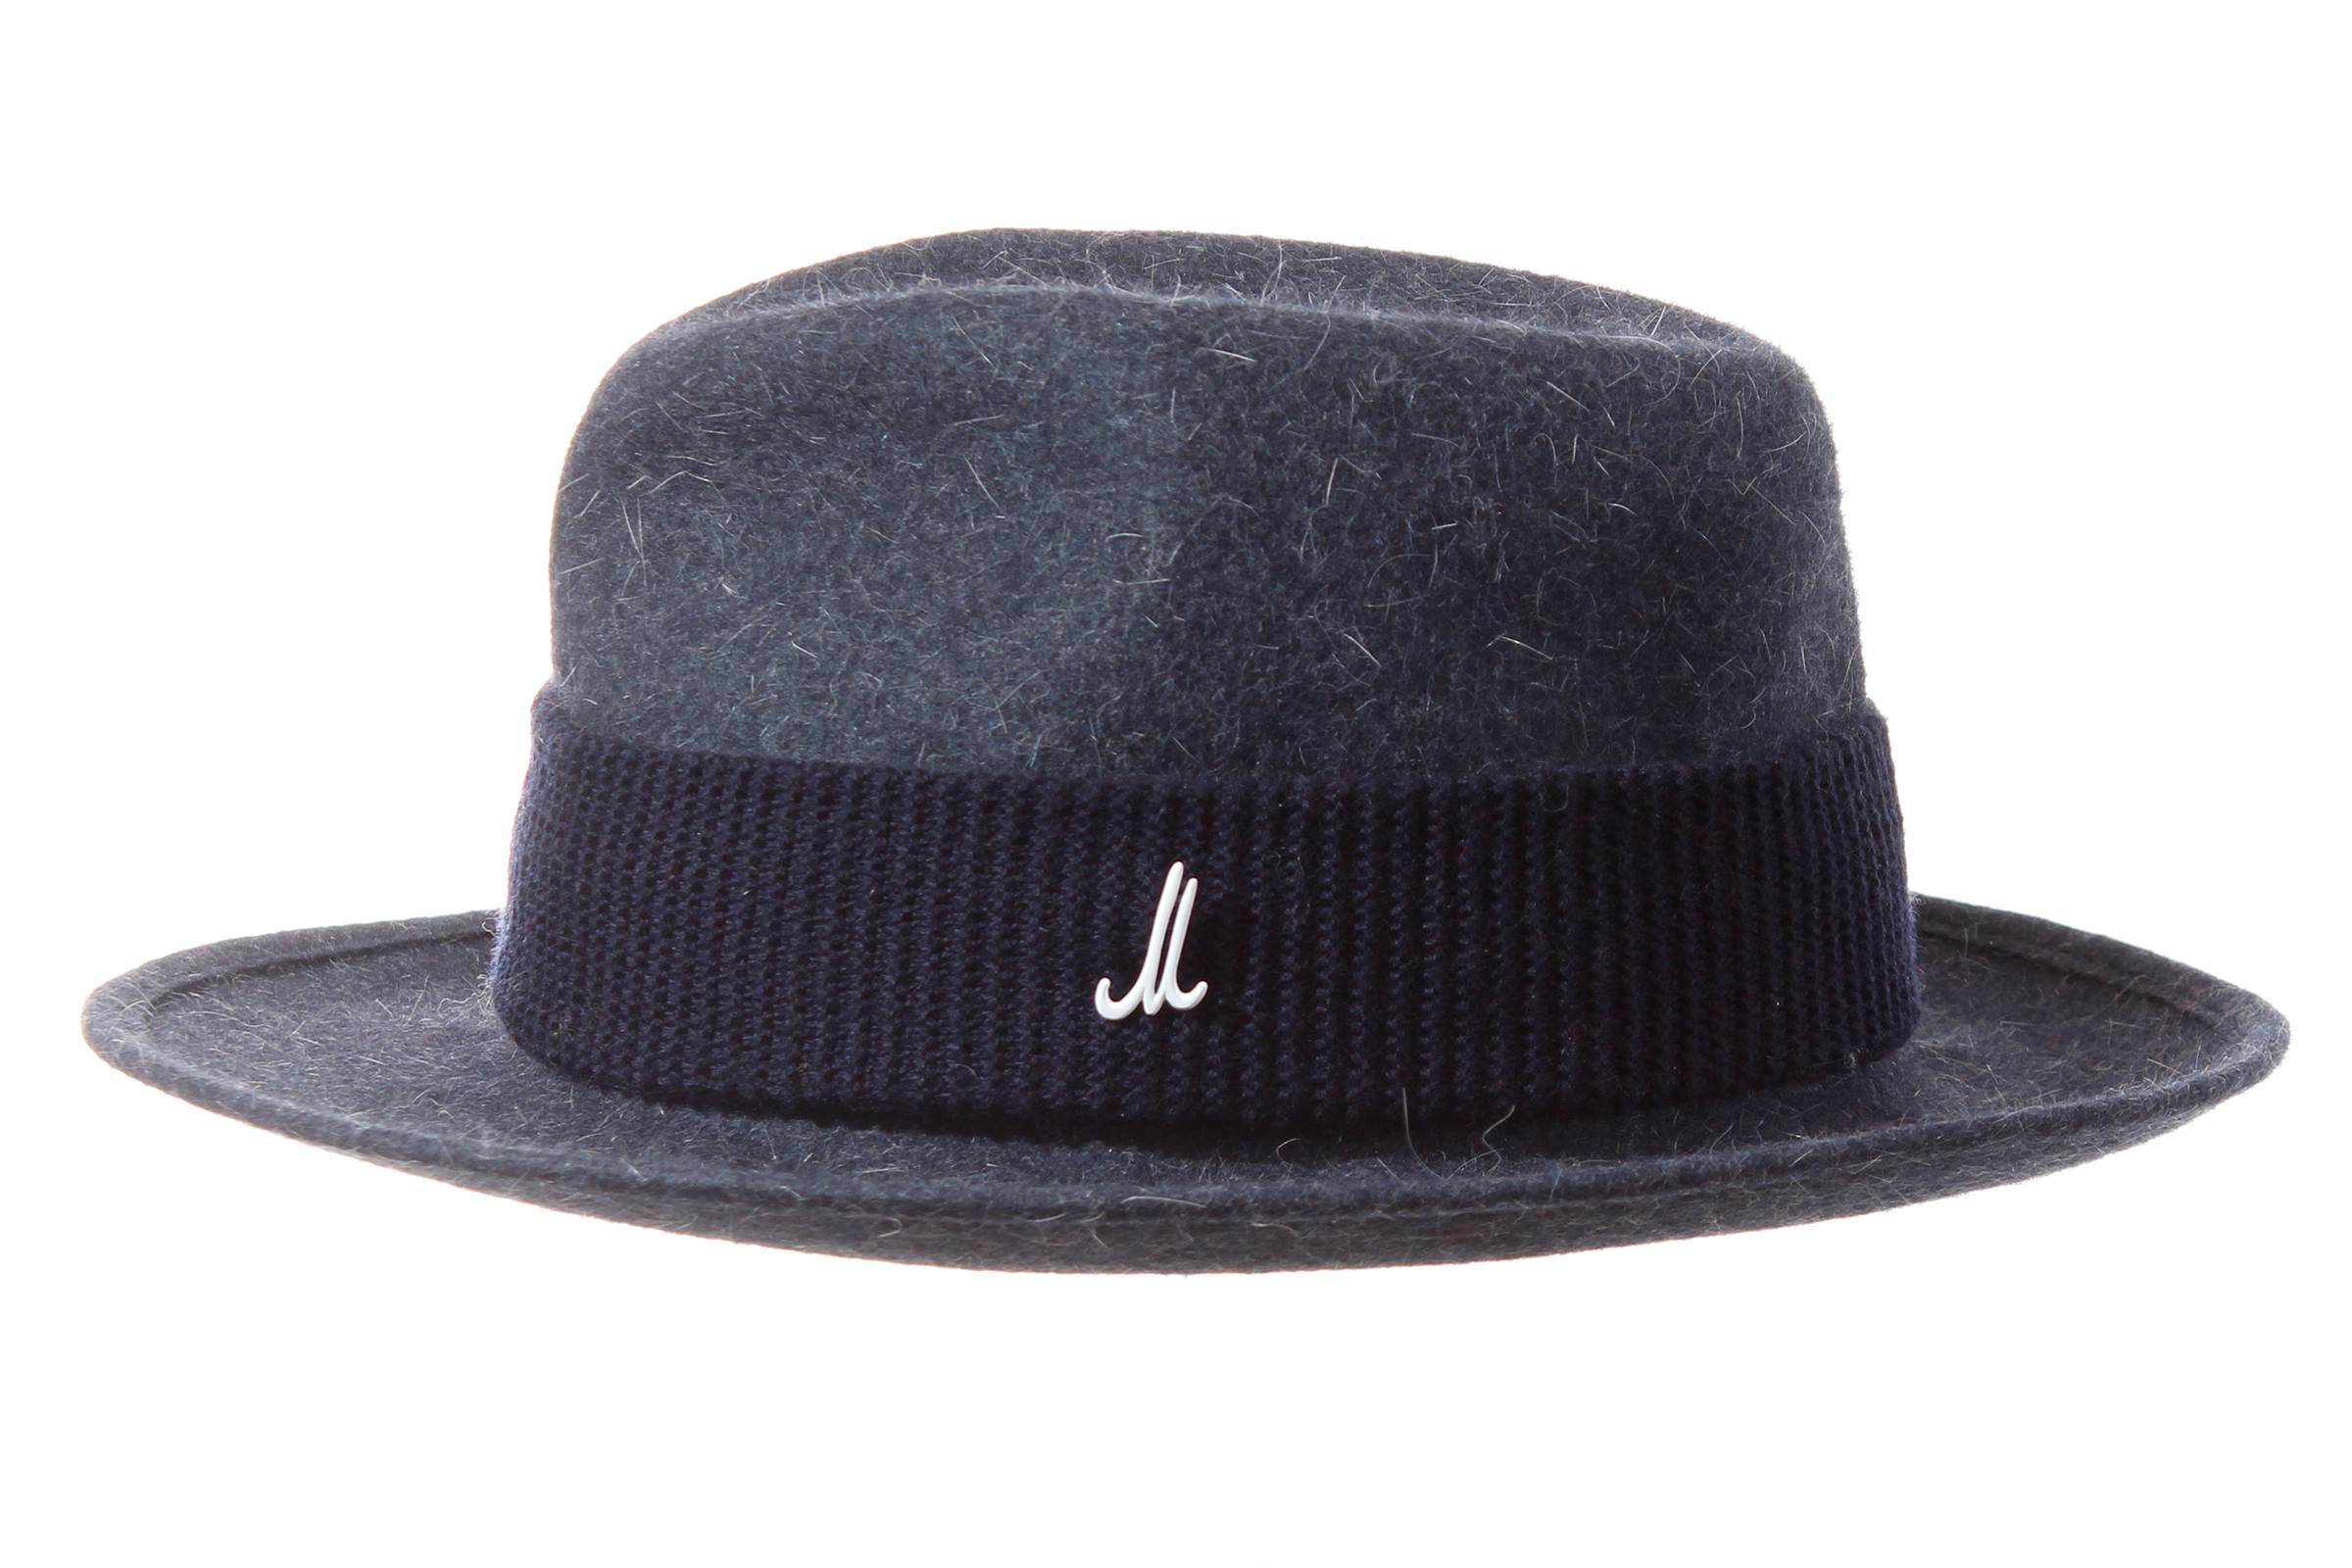 gentleman's hat PRINZ UDO fur felt superlight / MERINO HEADBAND